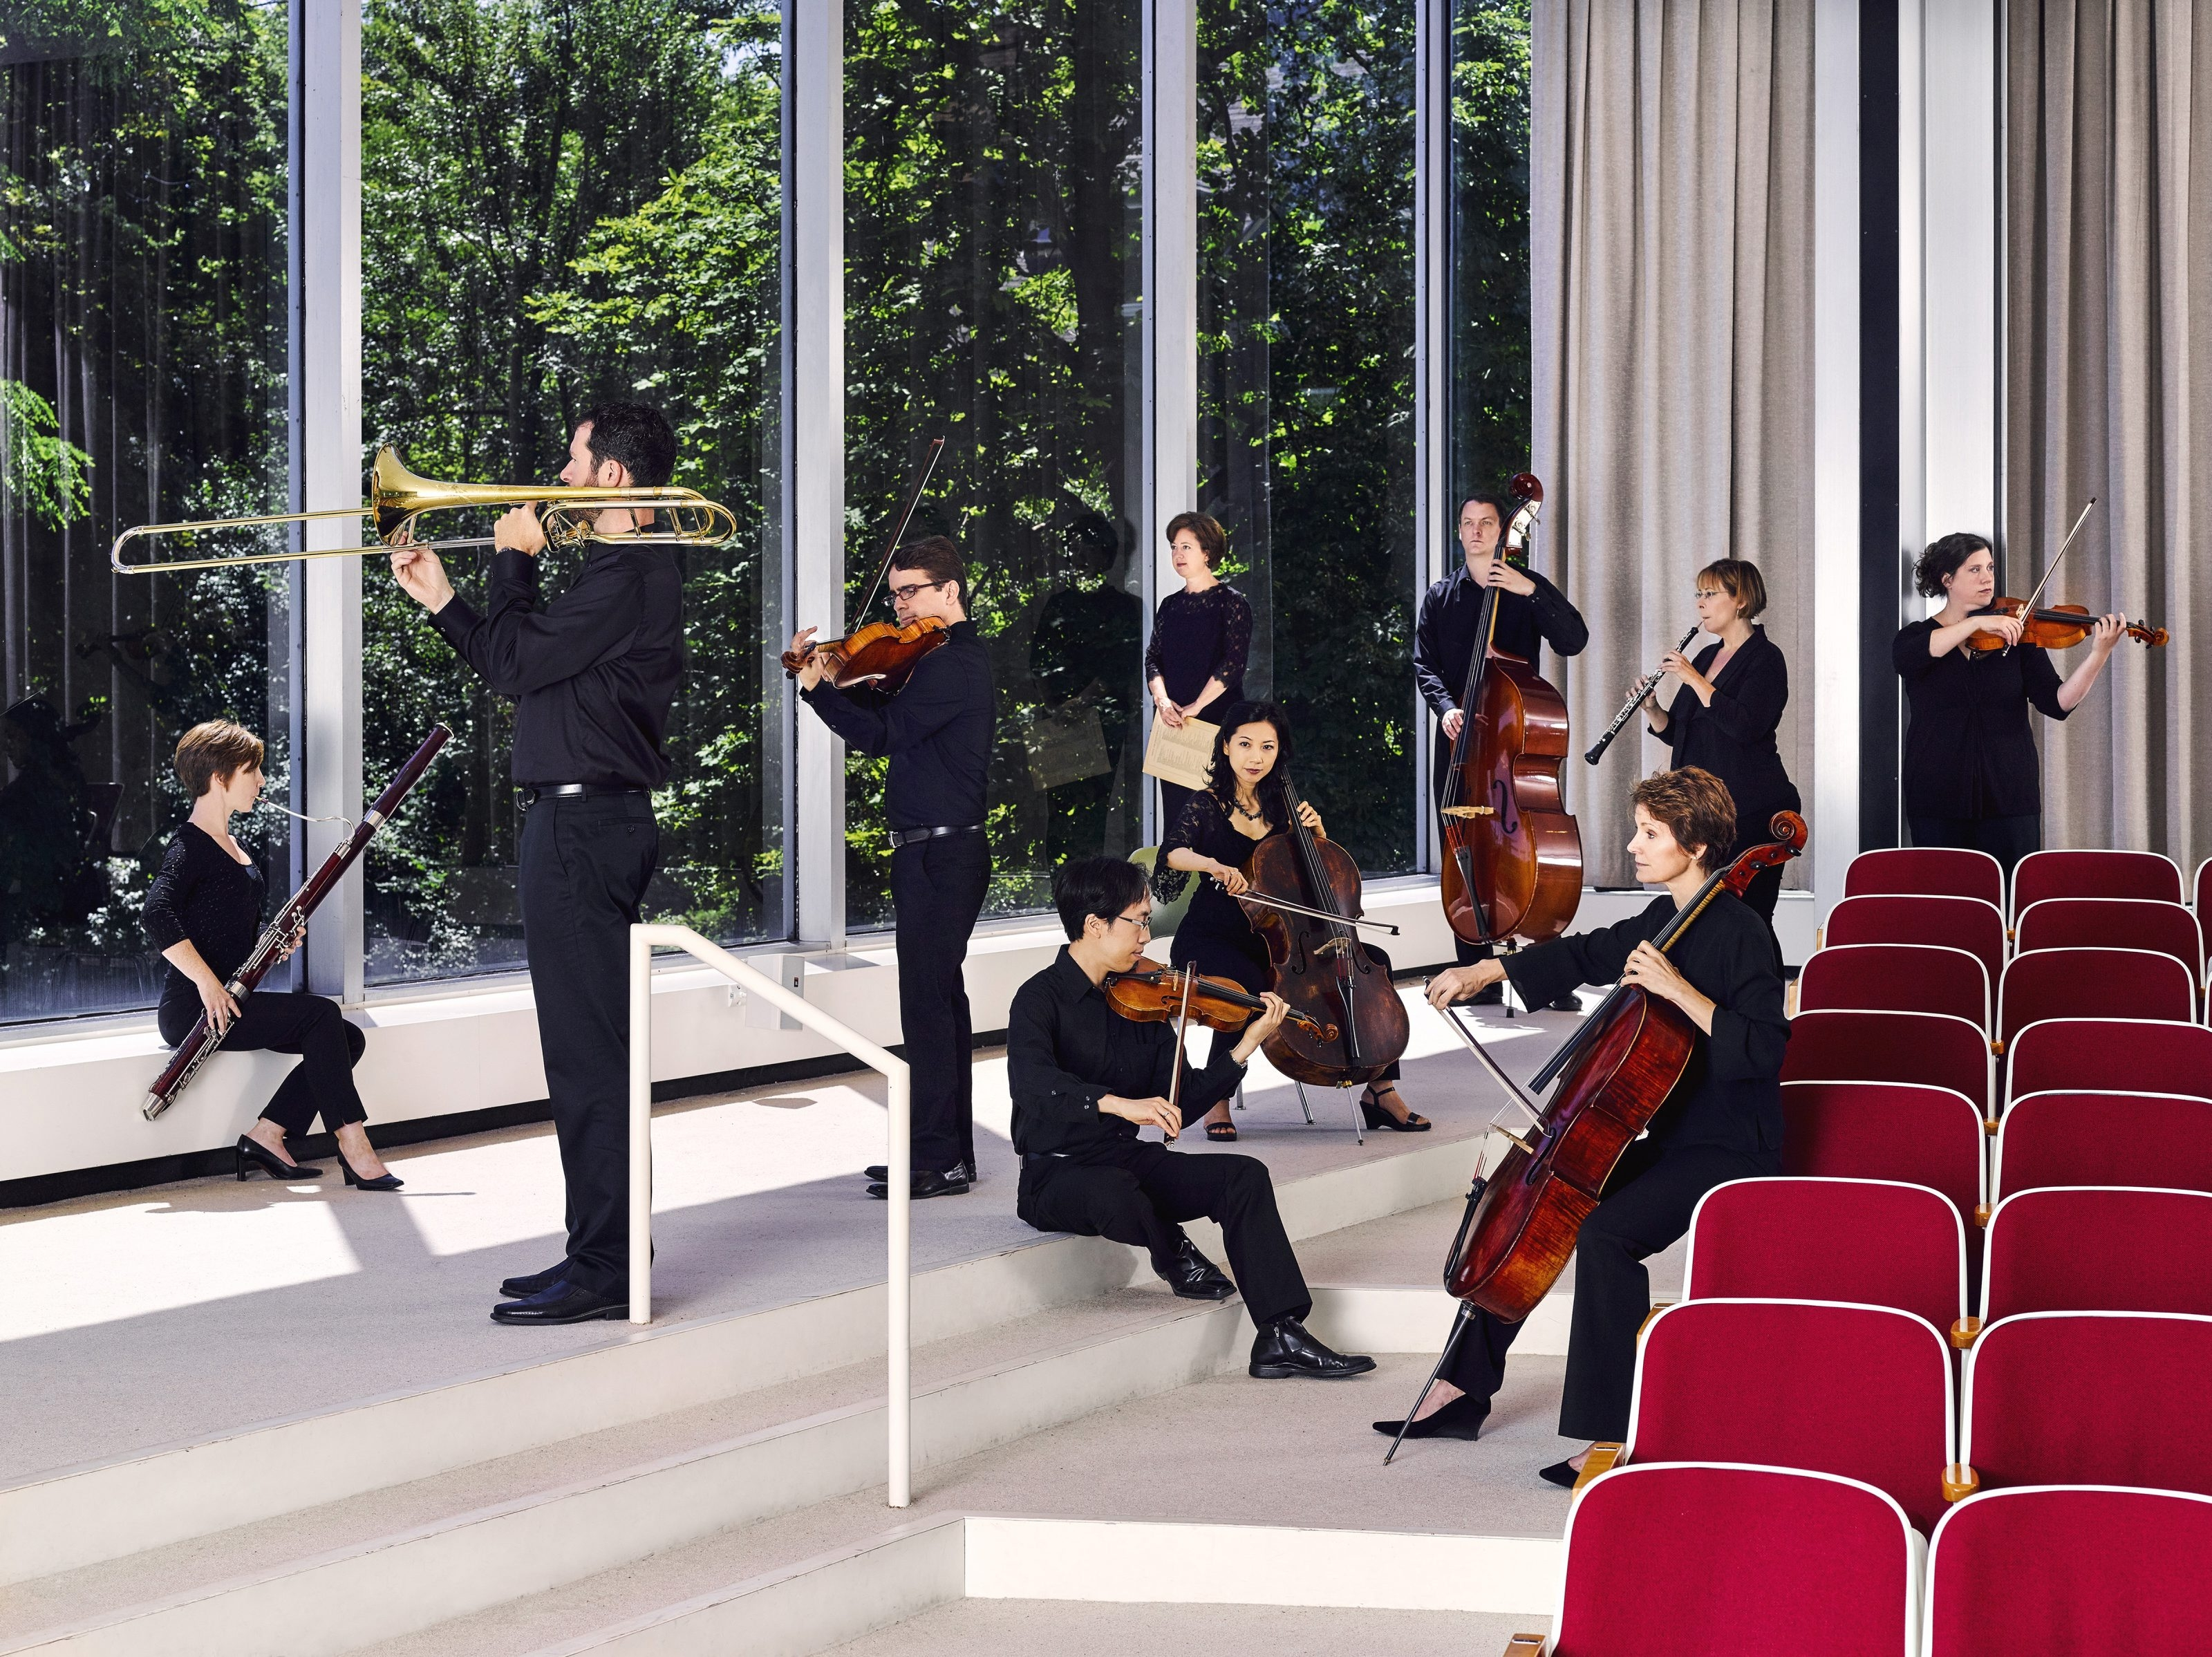 The Buffalo Chamber Players are in residence at the Albright-Knox Art Gallery. (Photo by Luke Copping)